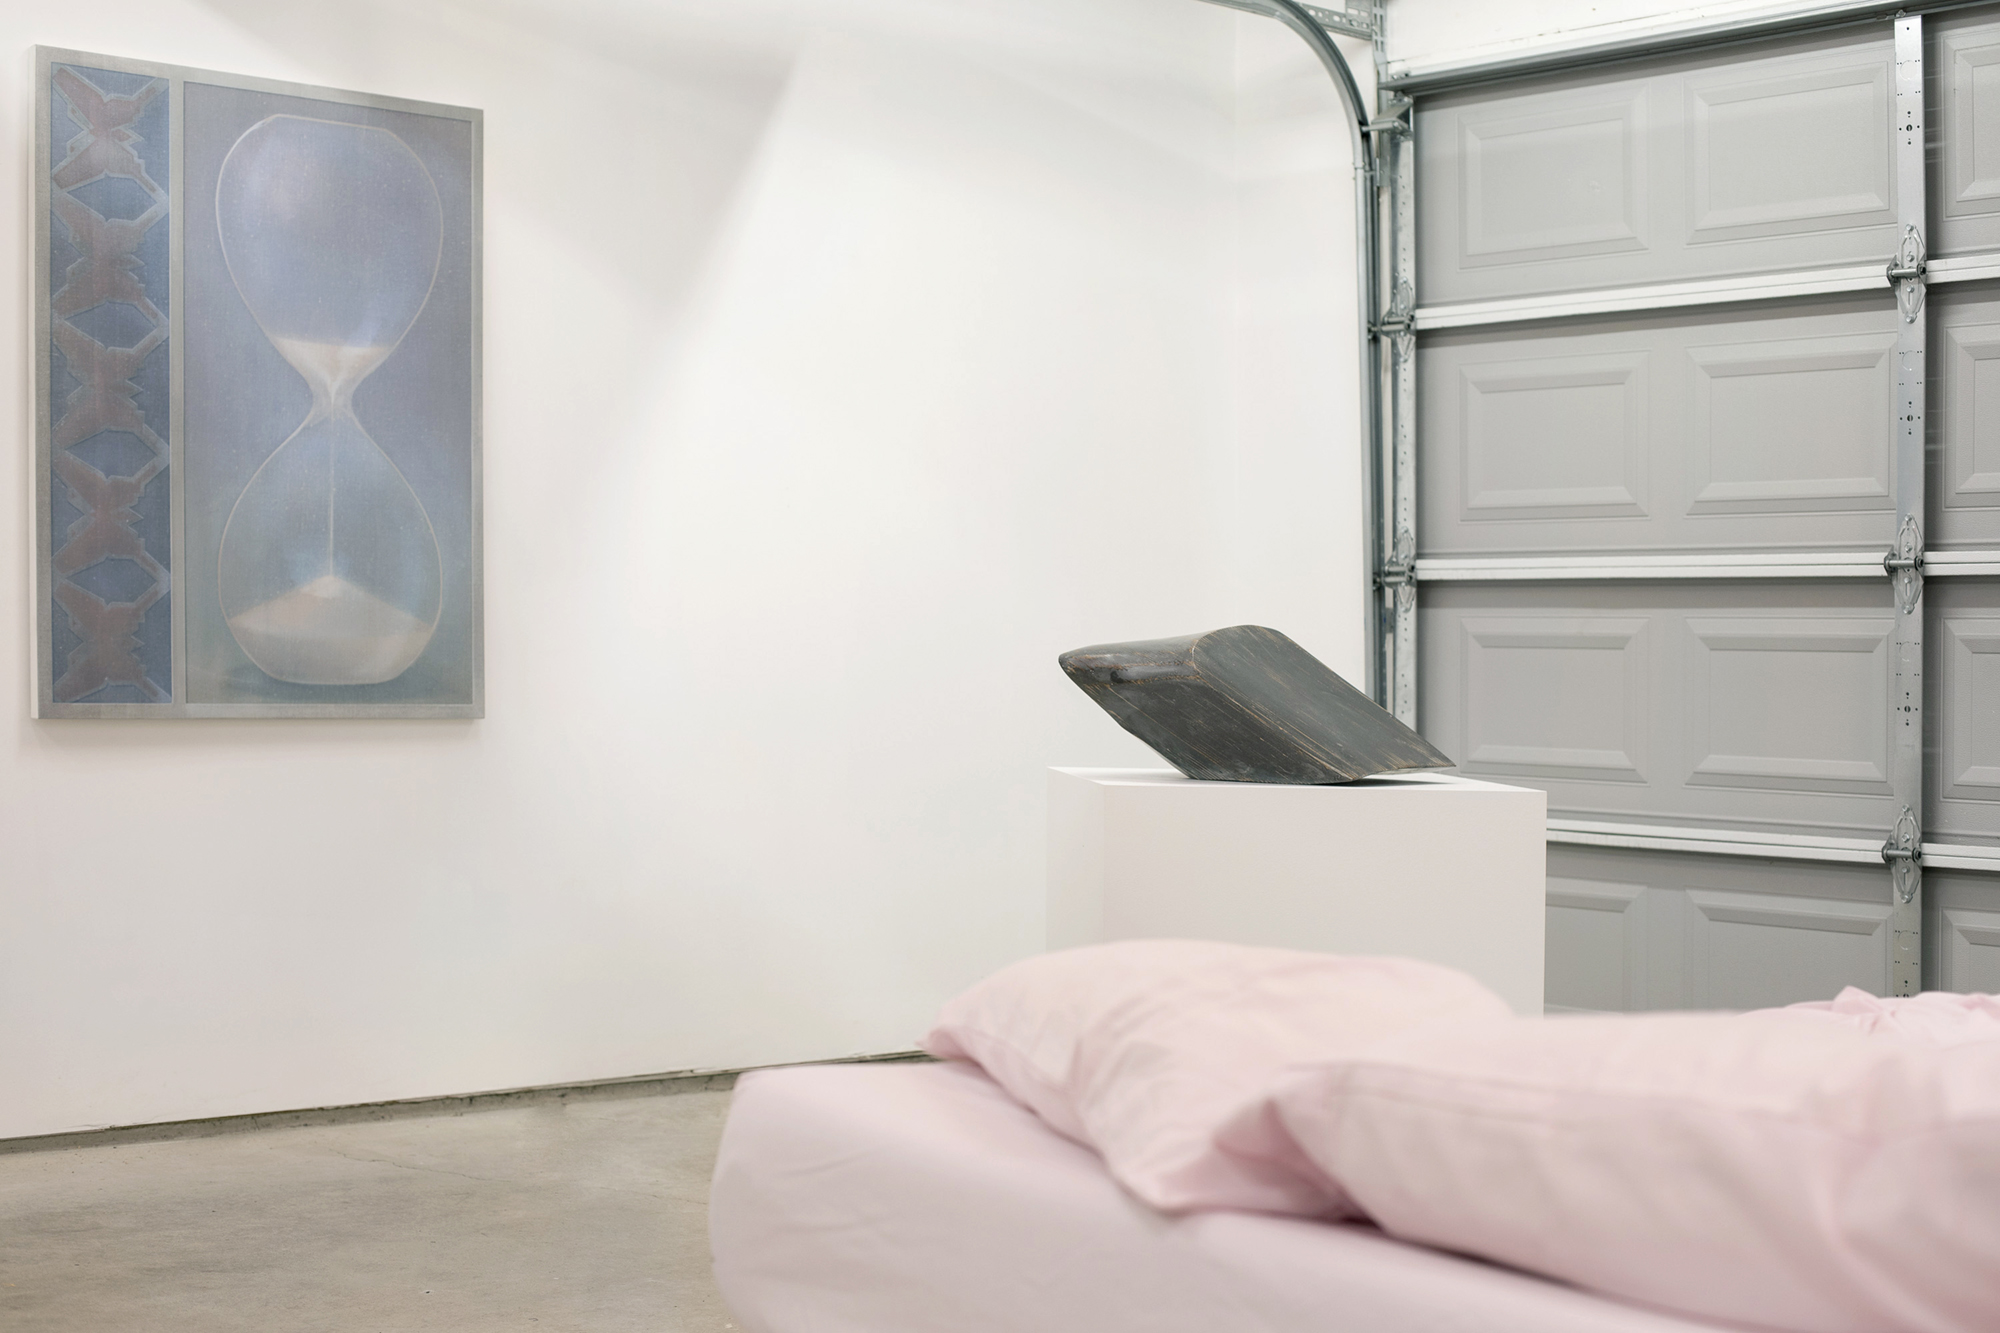 Installation view,  Saturnine,  curated by Stephanie Cristello at Chicago Manual Style, featuring Theodora Allen, Antoine Donzeaud, Assaf Evron, and Wim van der Linden, 2019. Photo: Assaf Evron